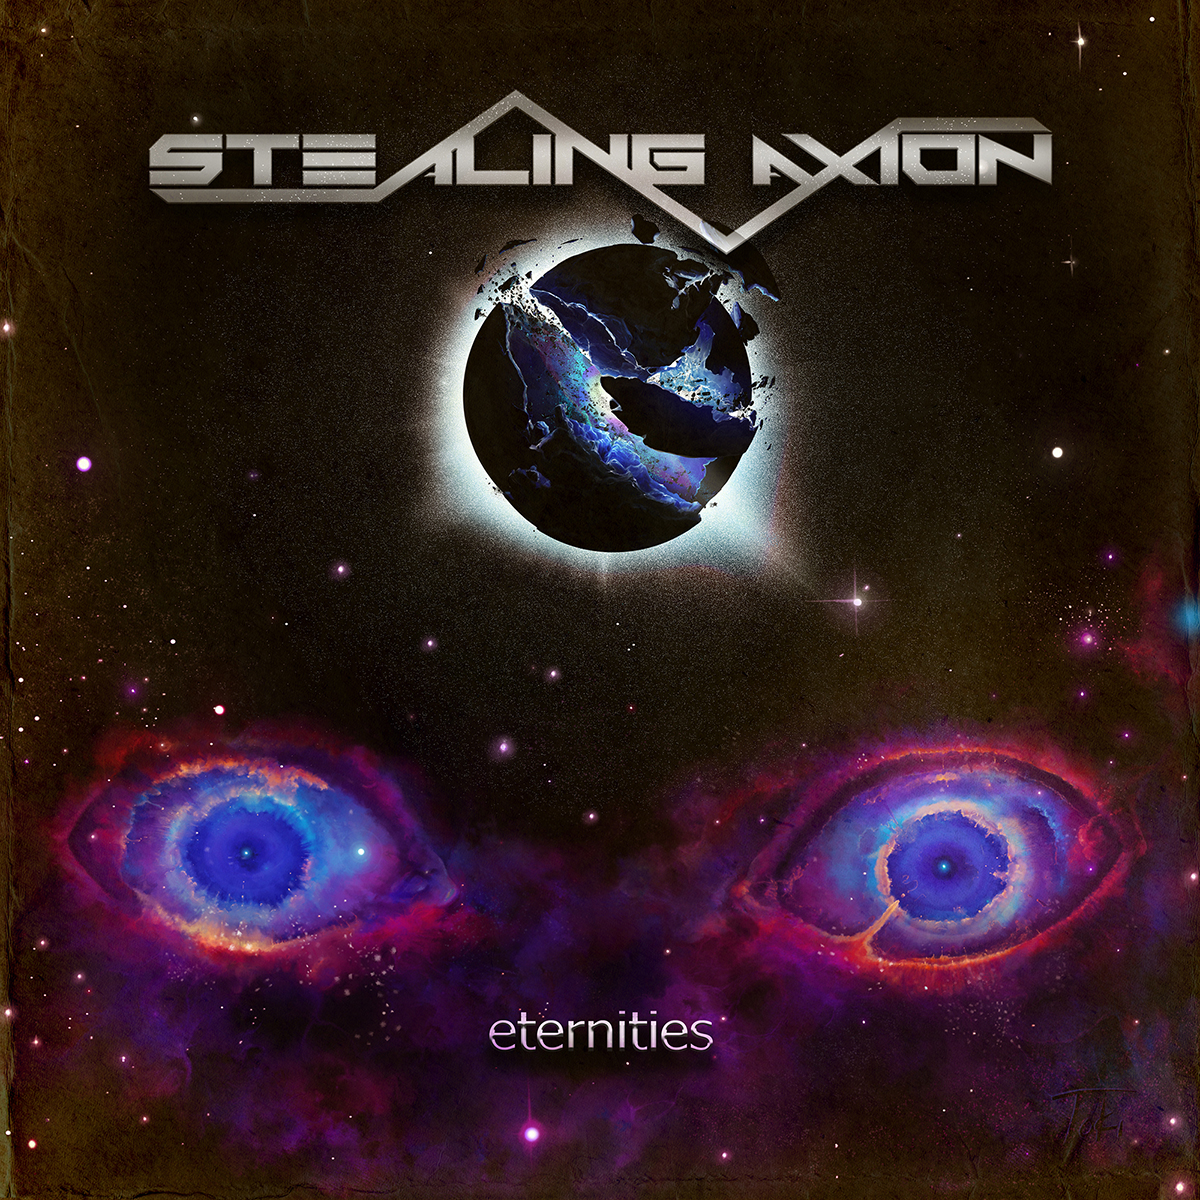 Stealing Axion:eternities - album cover art.